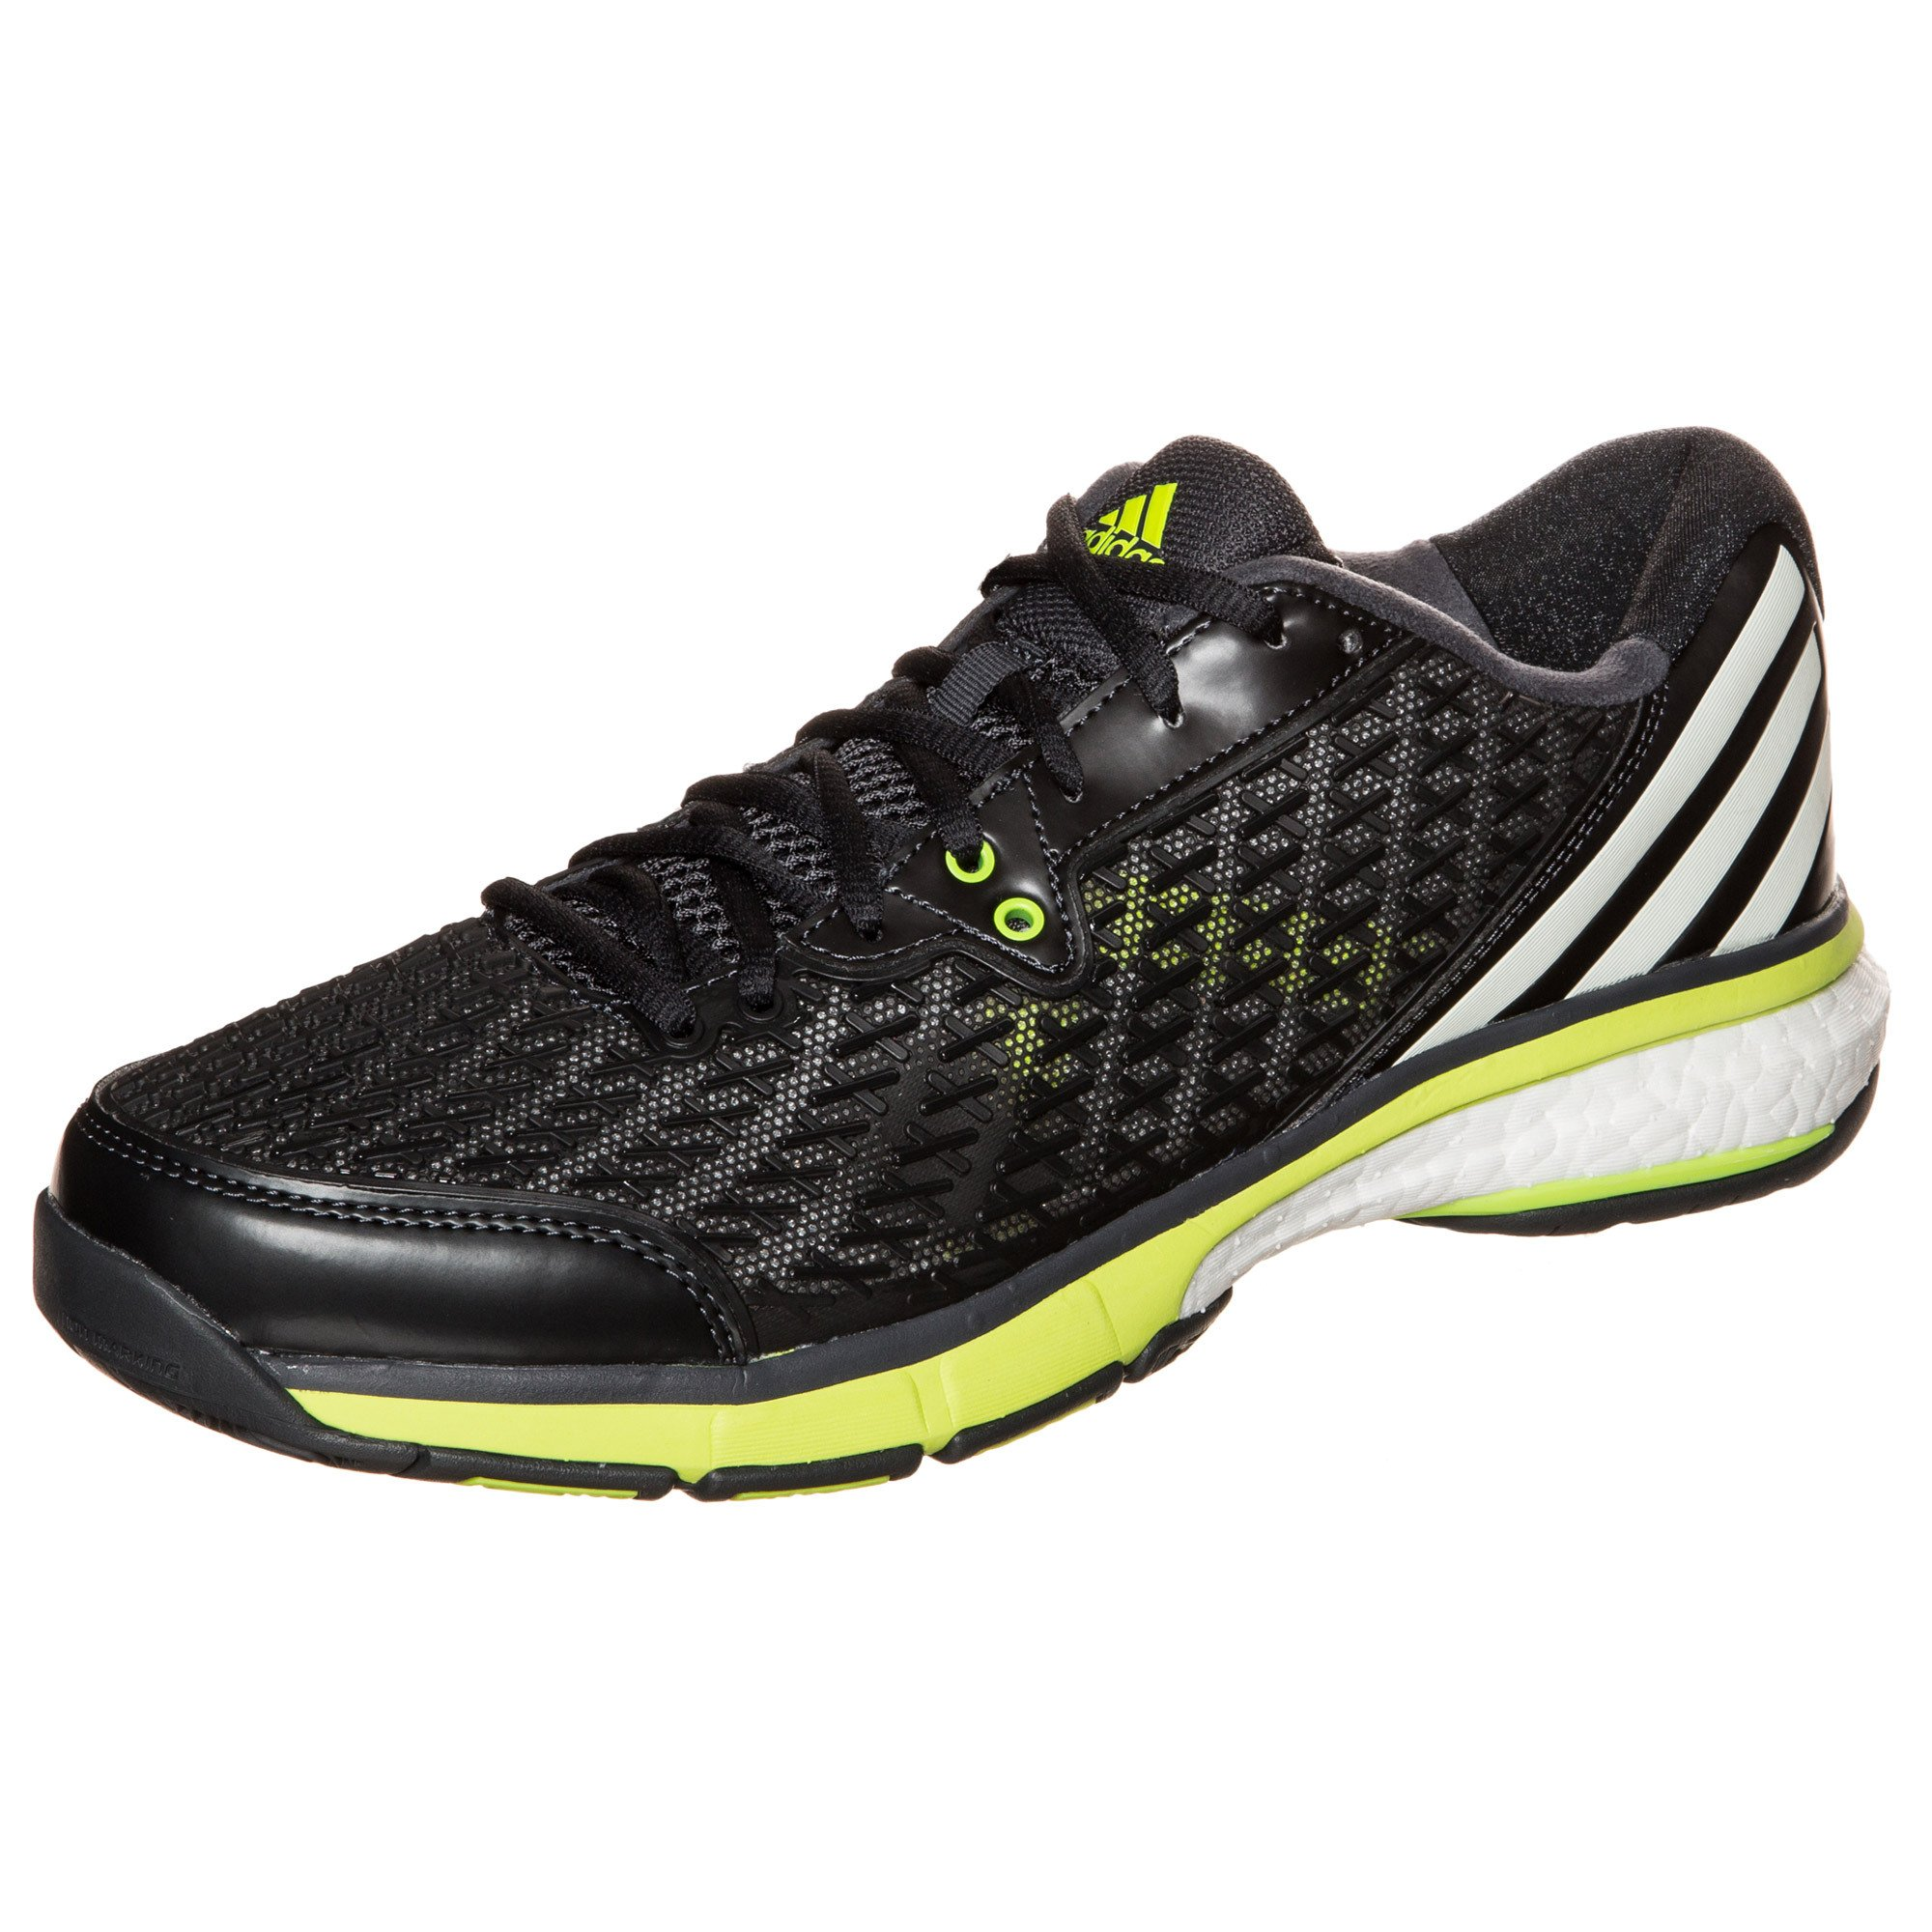 adidas Energy Boost Volley Men's Shoes Dark Grey/White/Yellow (12.5) by adidas